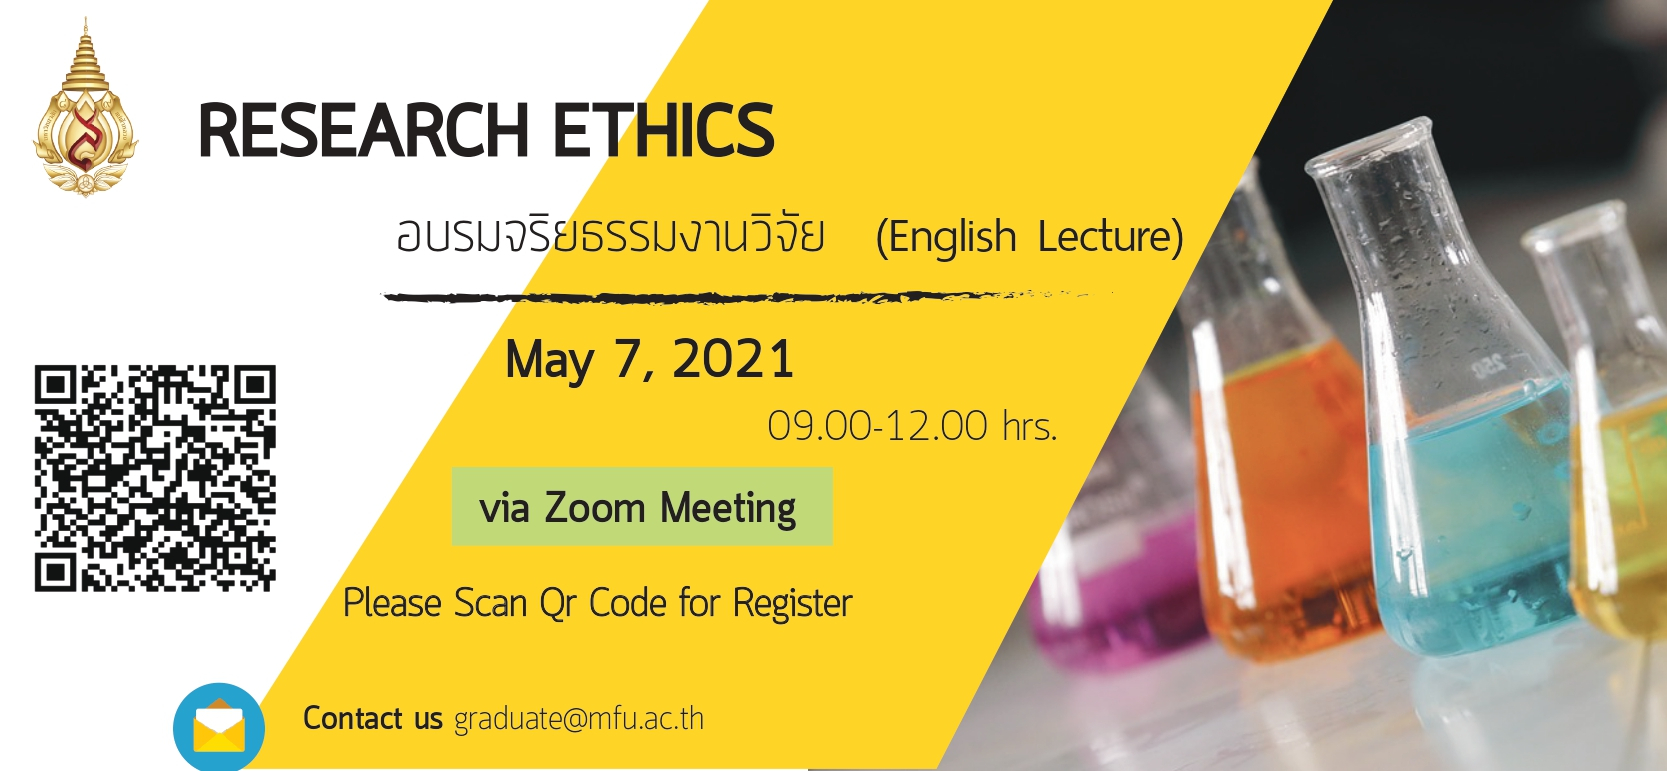 research ethic อบรมจริยธรรมงานวิจัย (English lecture) via Zoom Meeting